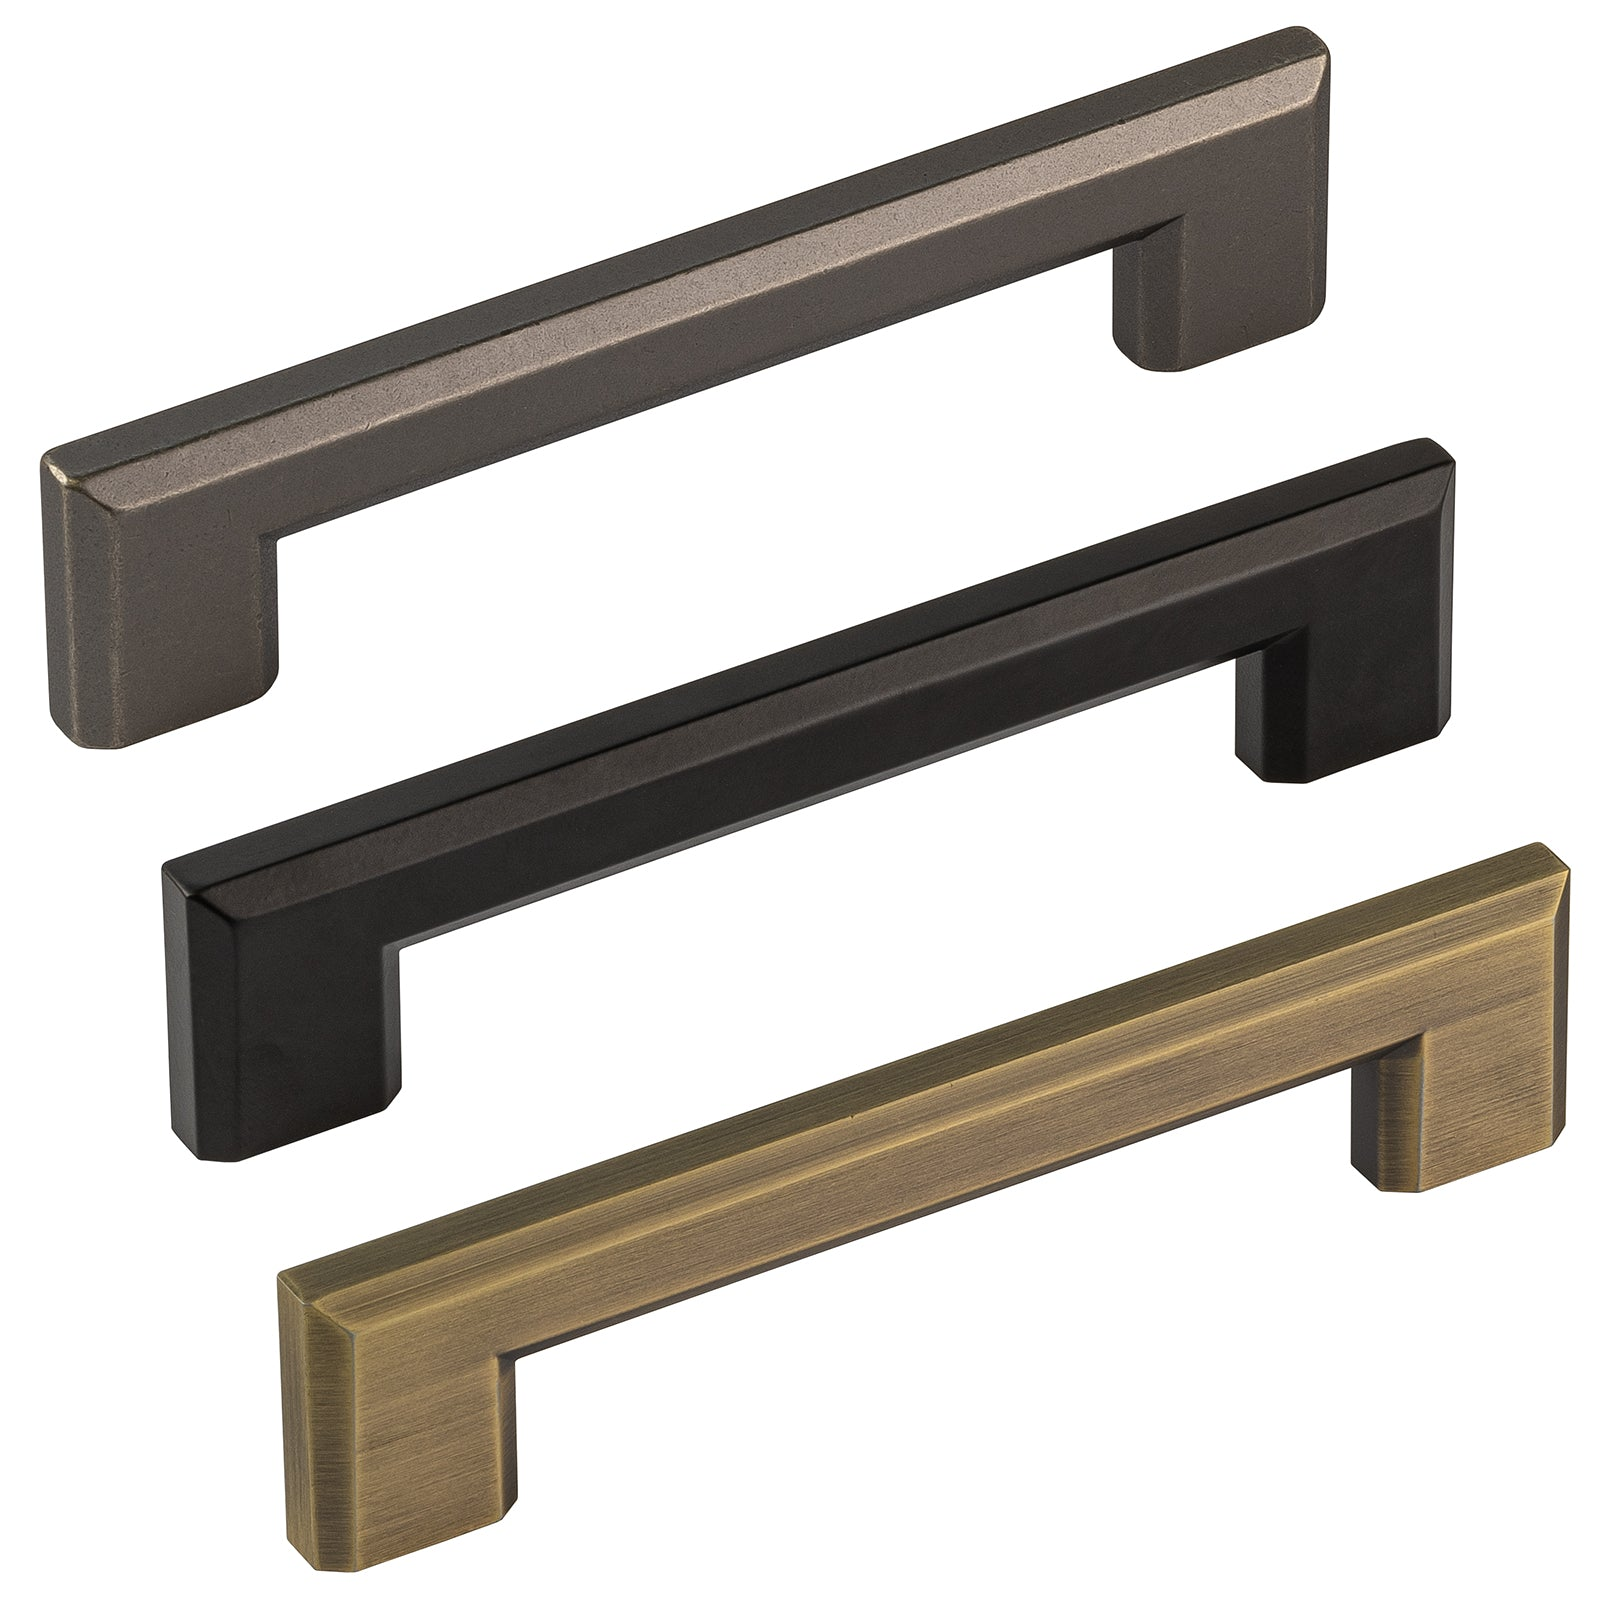 wardrobe modern handles, Binary Pulls from the Industrial Cabinet Furniture Collection